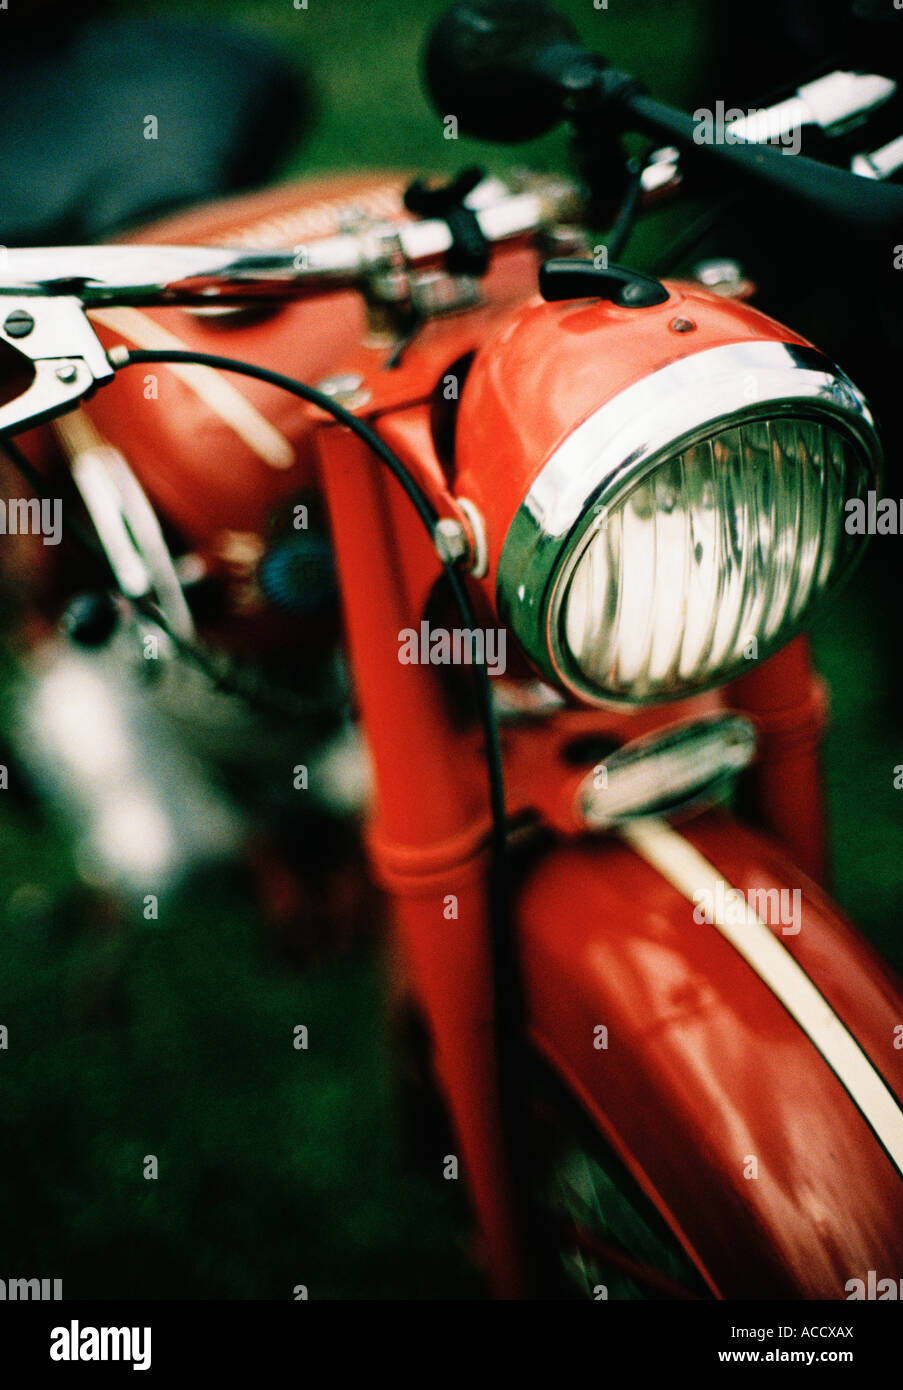 A red Husqvarna mooped. - Stock Image